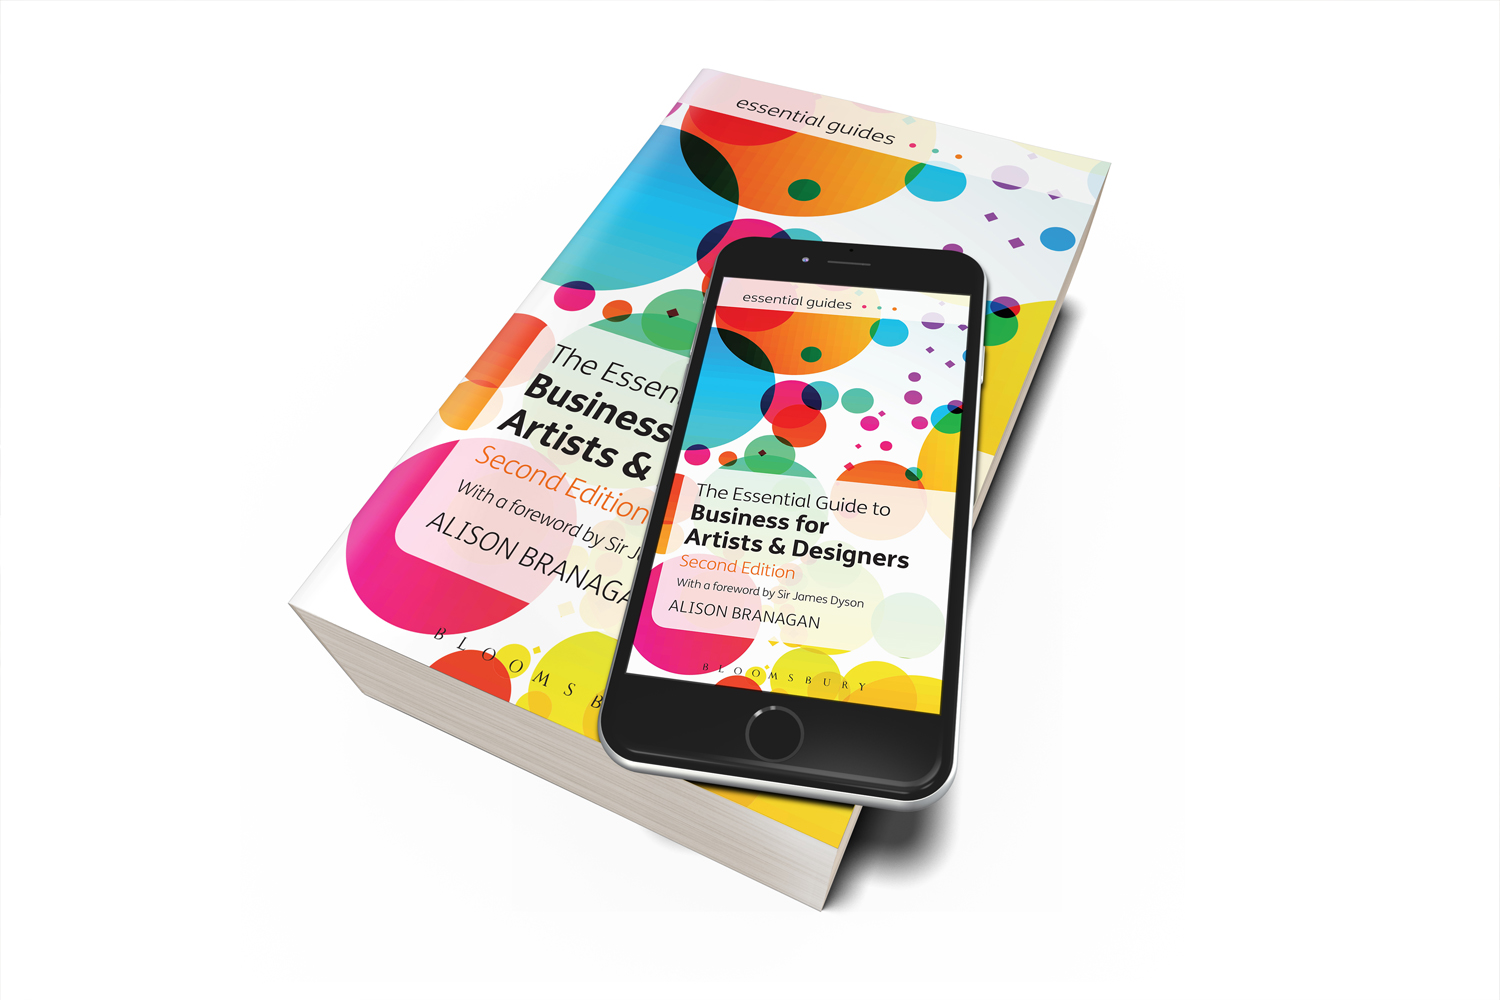 Audrey's featured in the book 'The Essential Guide to Business for Artists and Designers'!